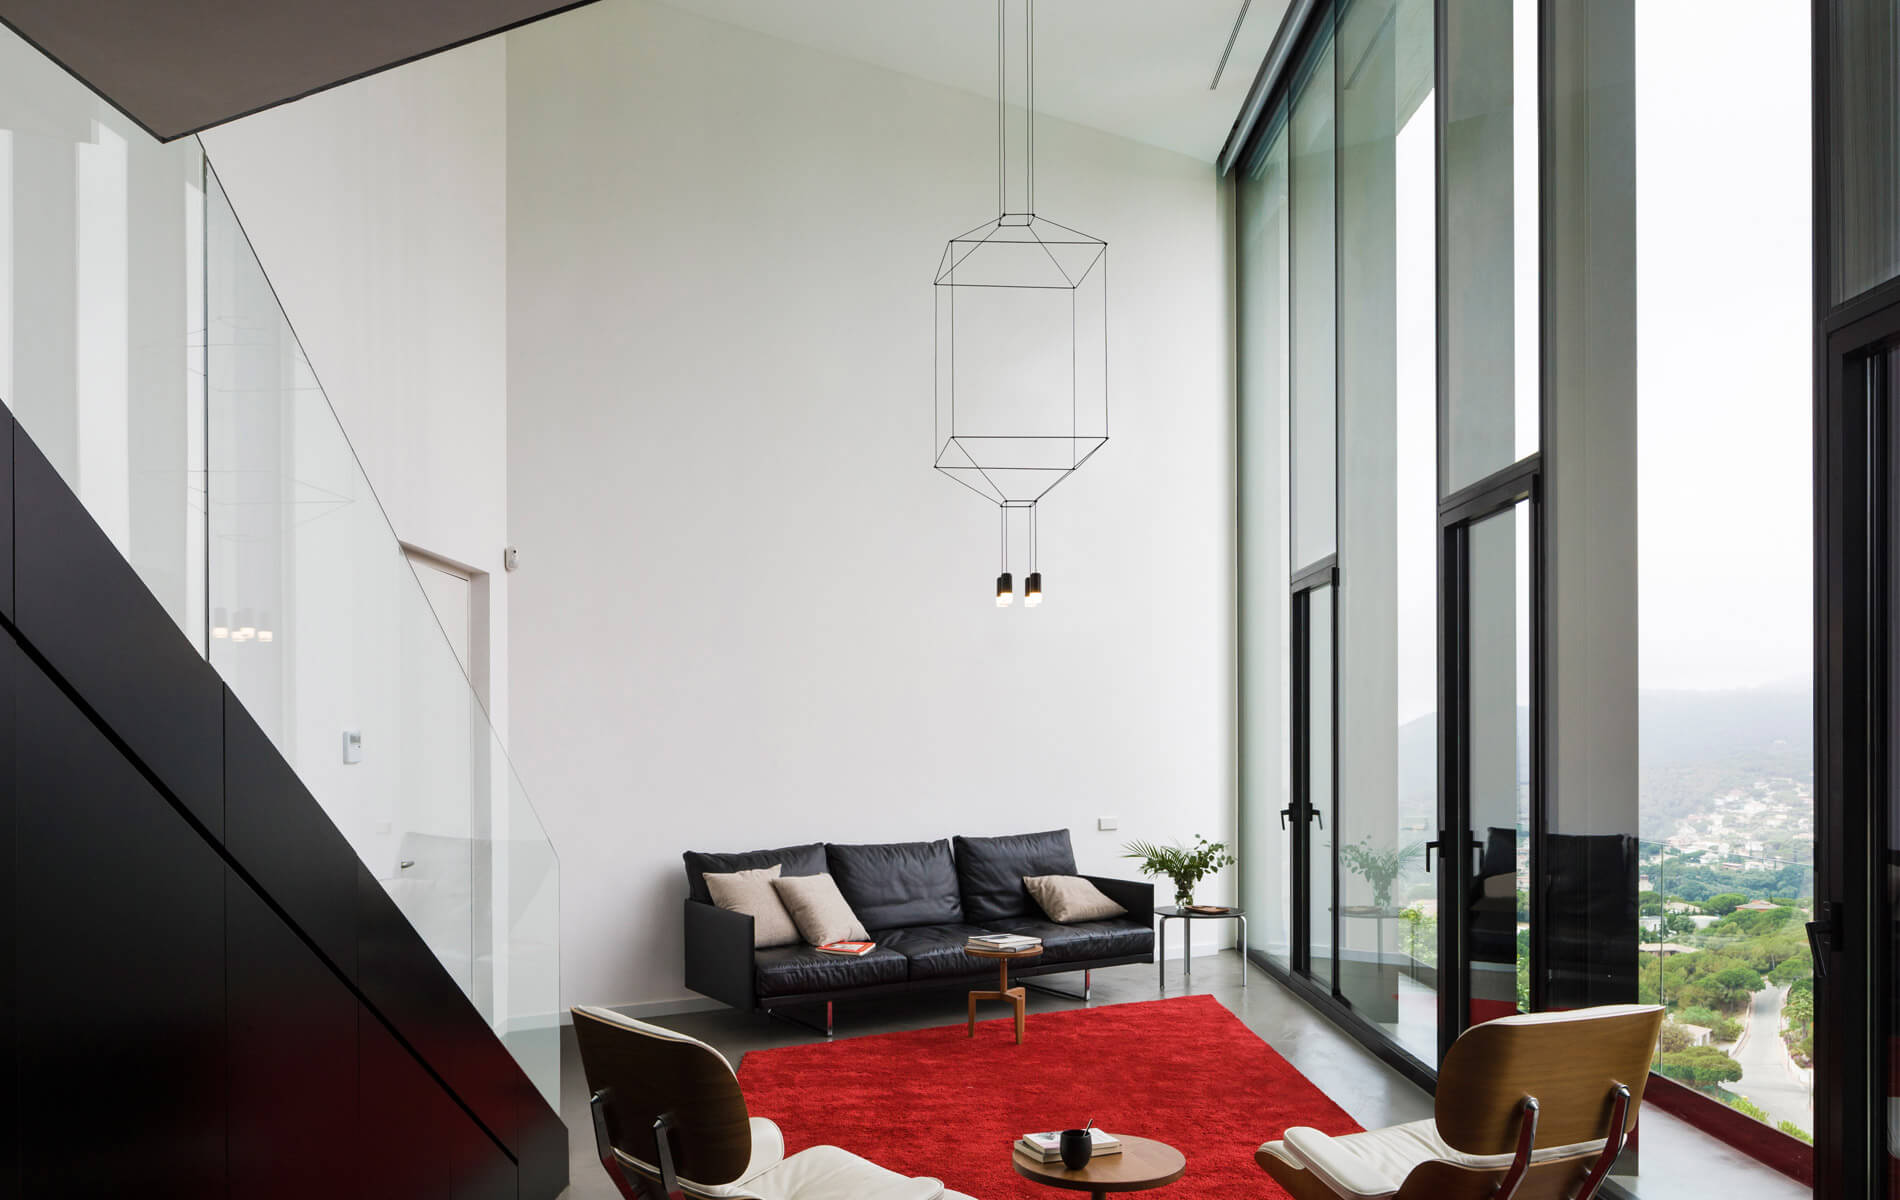 More information of Vibia WIREFLOW 0310 hanging lamp